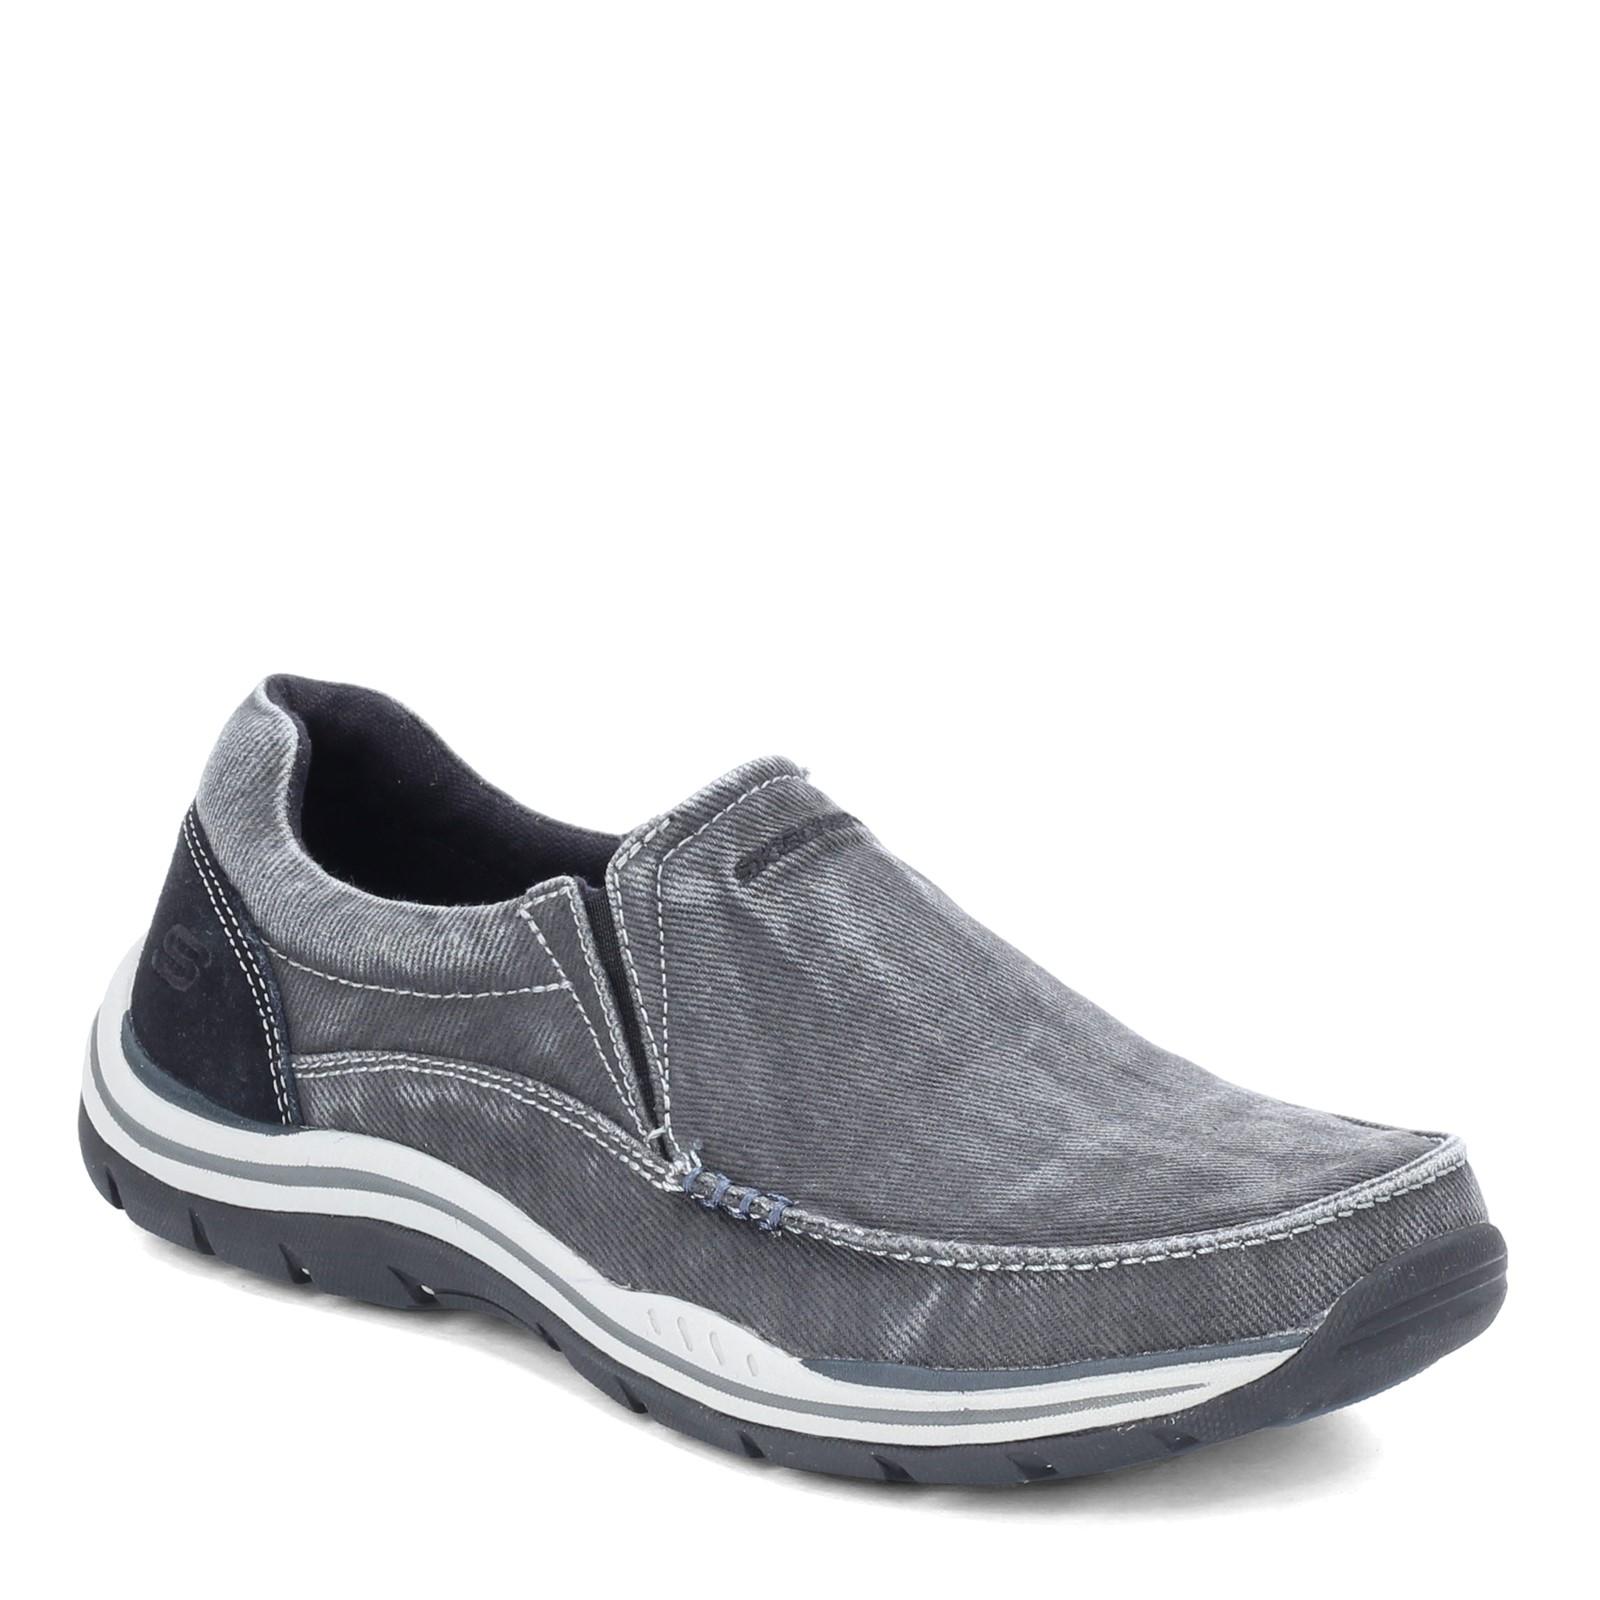 Men's Skechers, Relaxed Fit: Expected